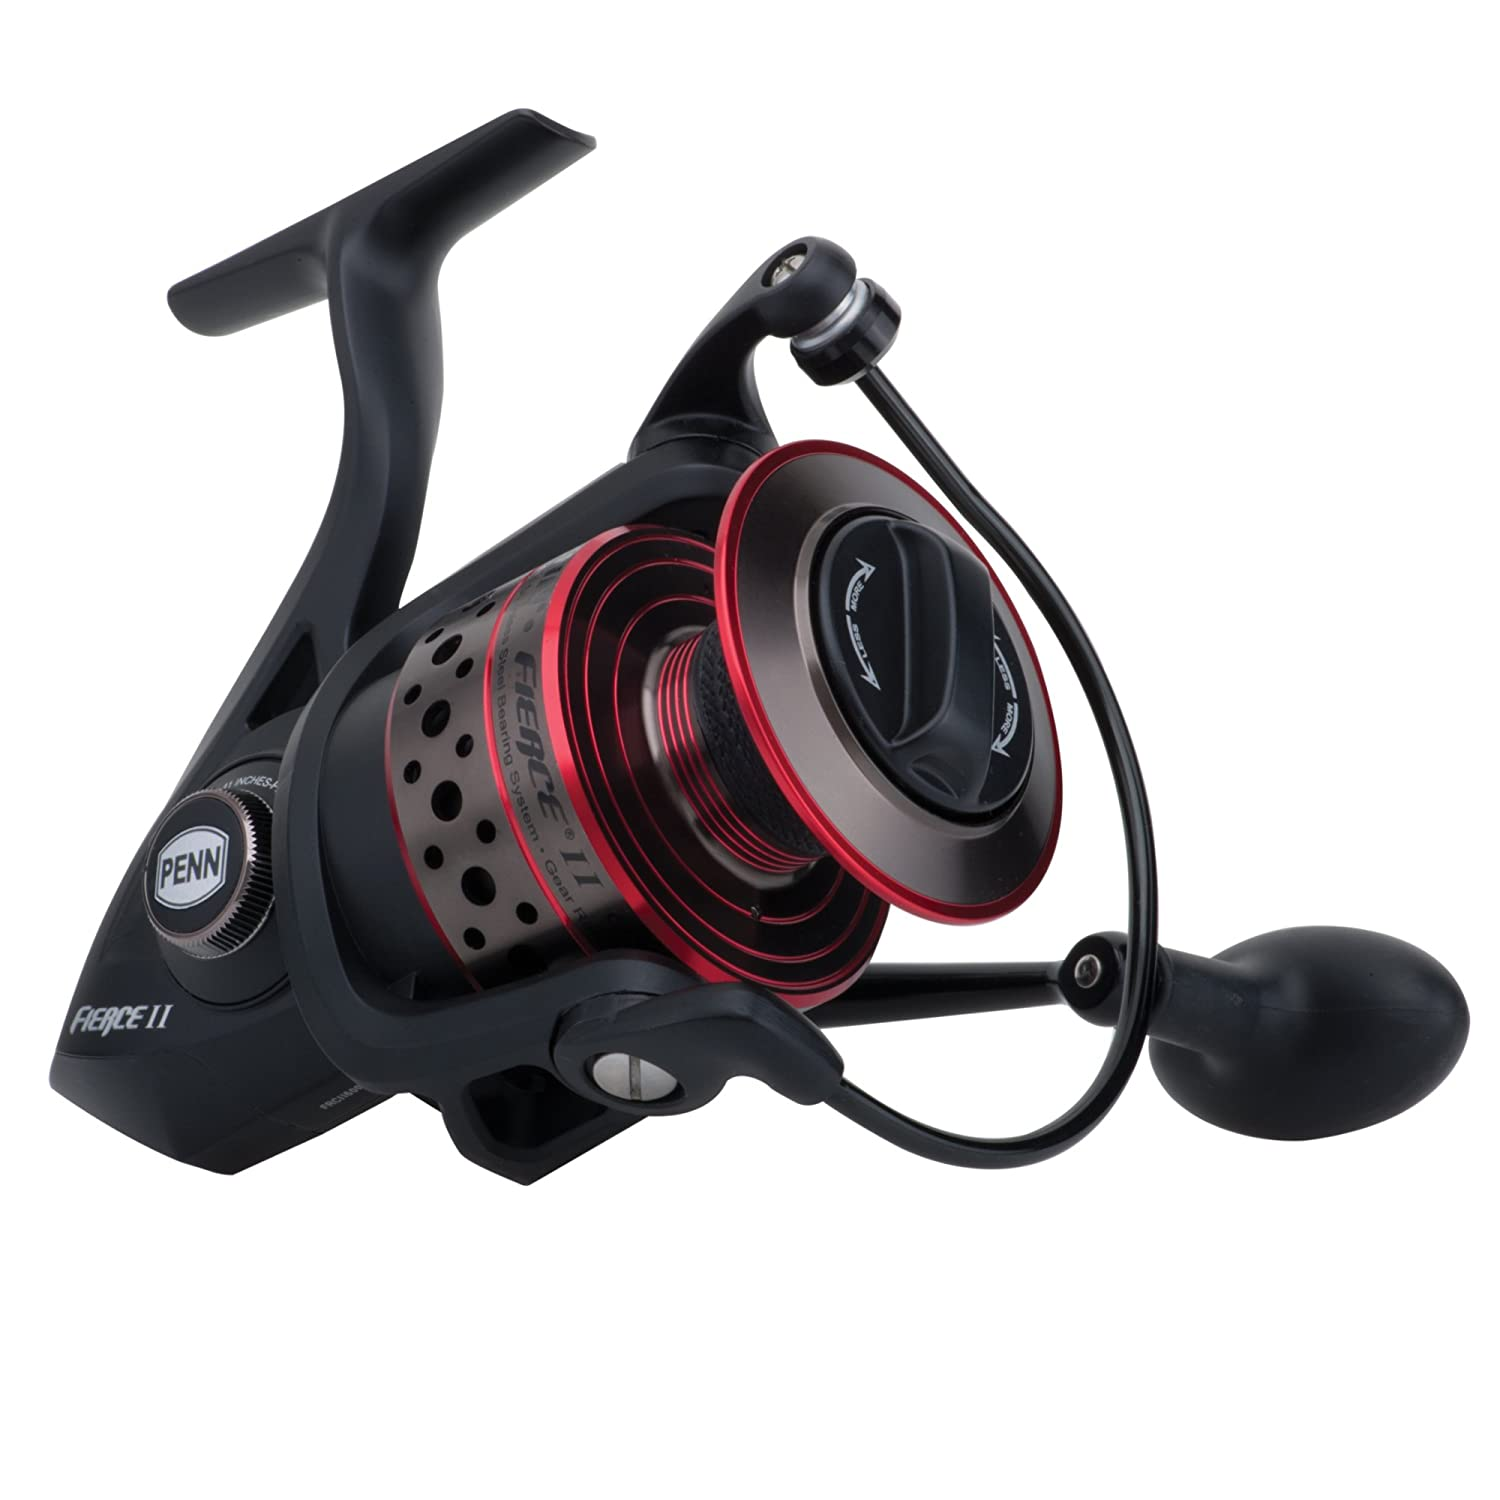 (8000C) - Penn Fierce II Spinning Fishing Reel   B012MCY8K6